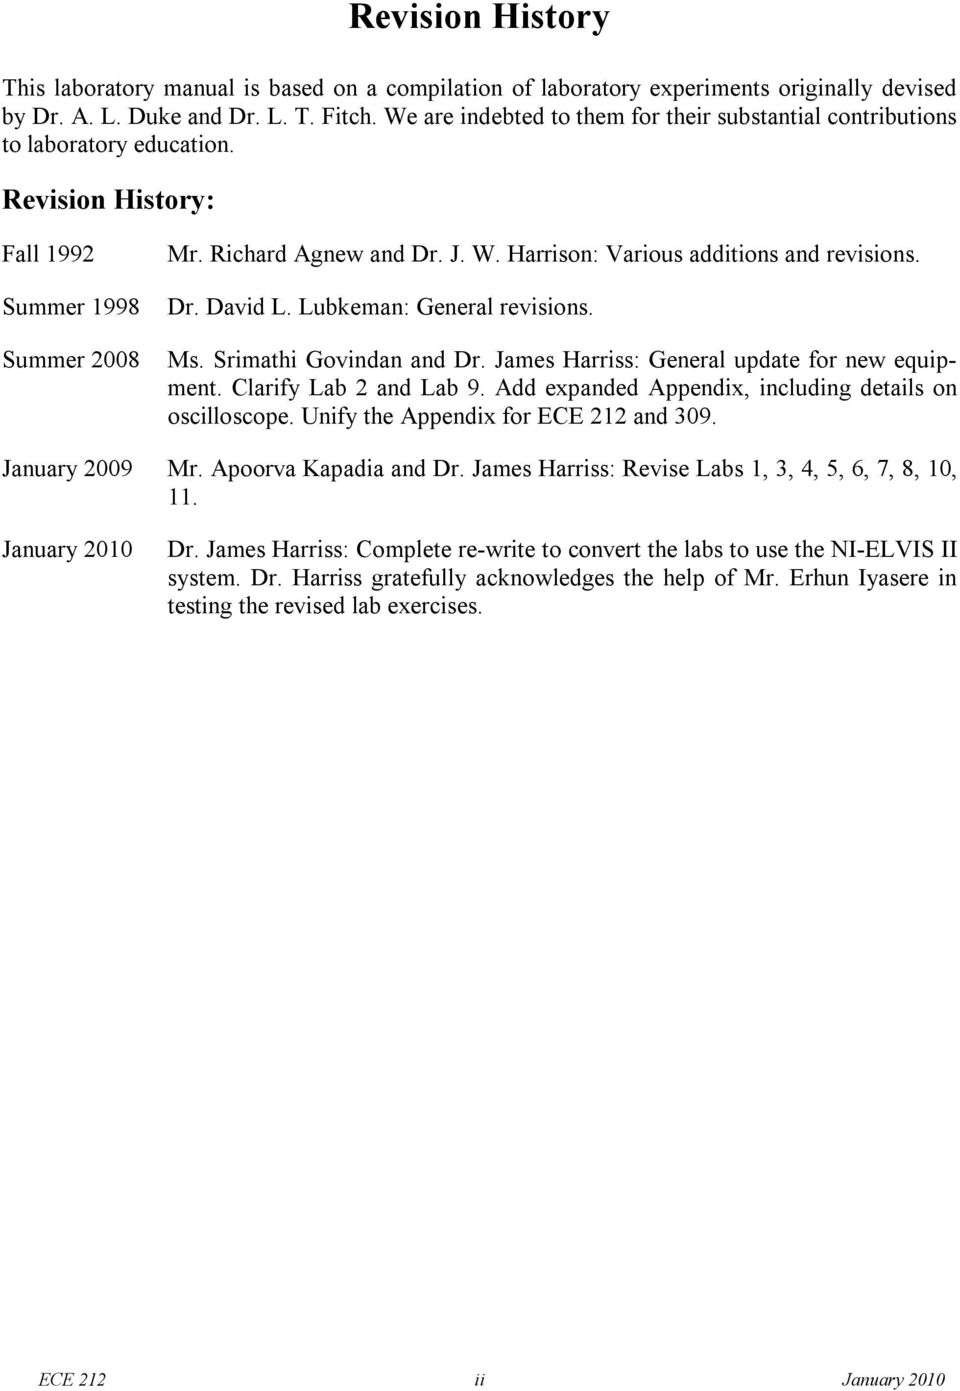 Harrison: Various additions and revisions. Dr. David L. Lubkeman: General  revisions